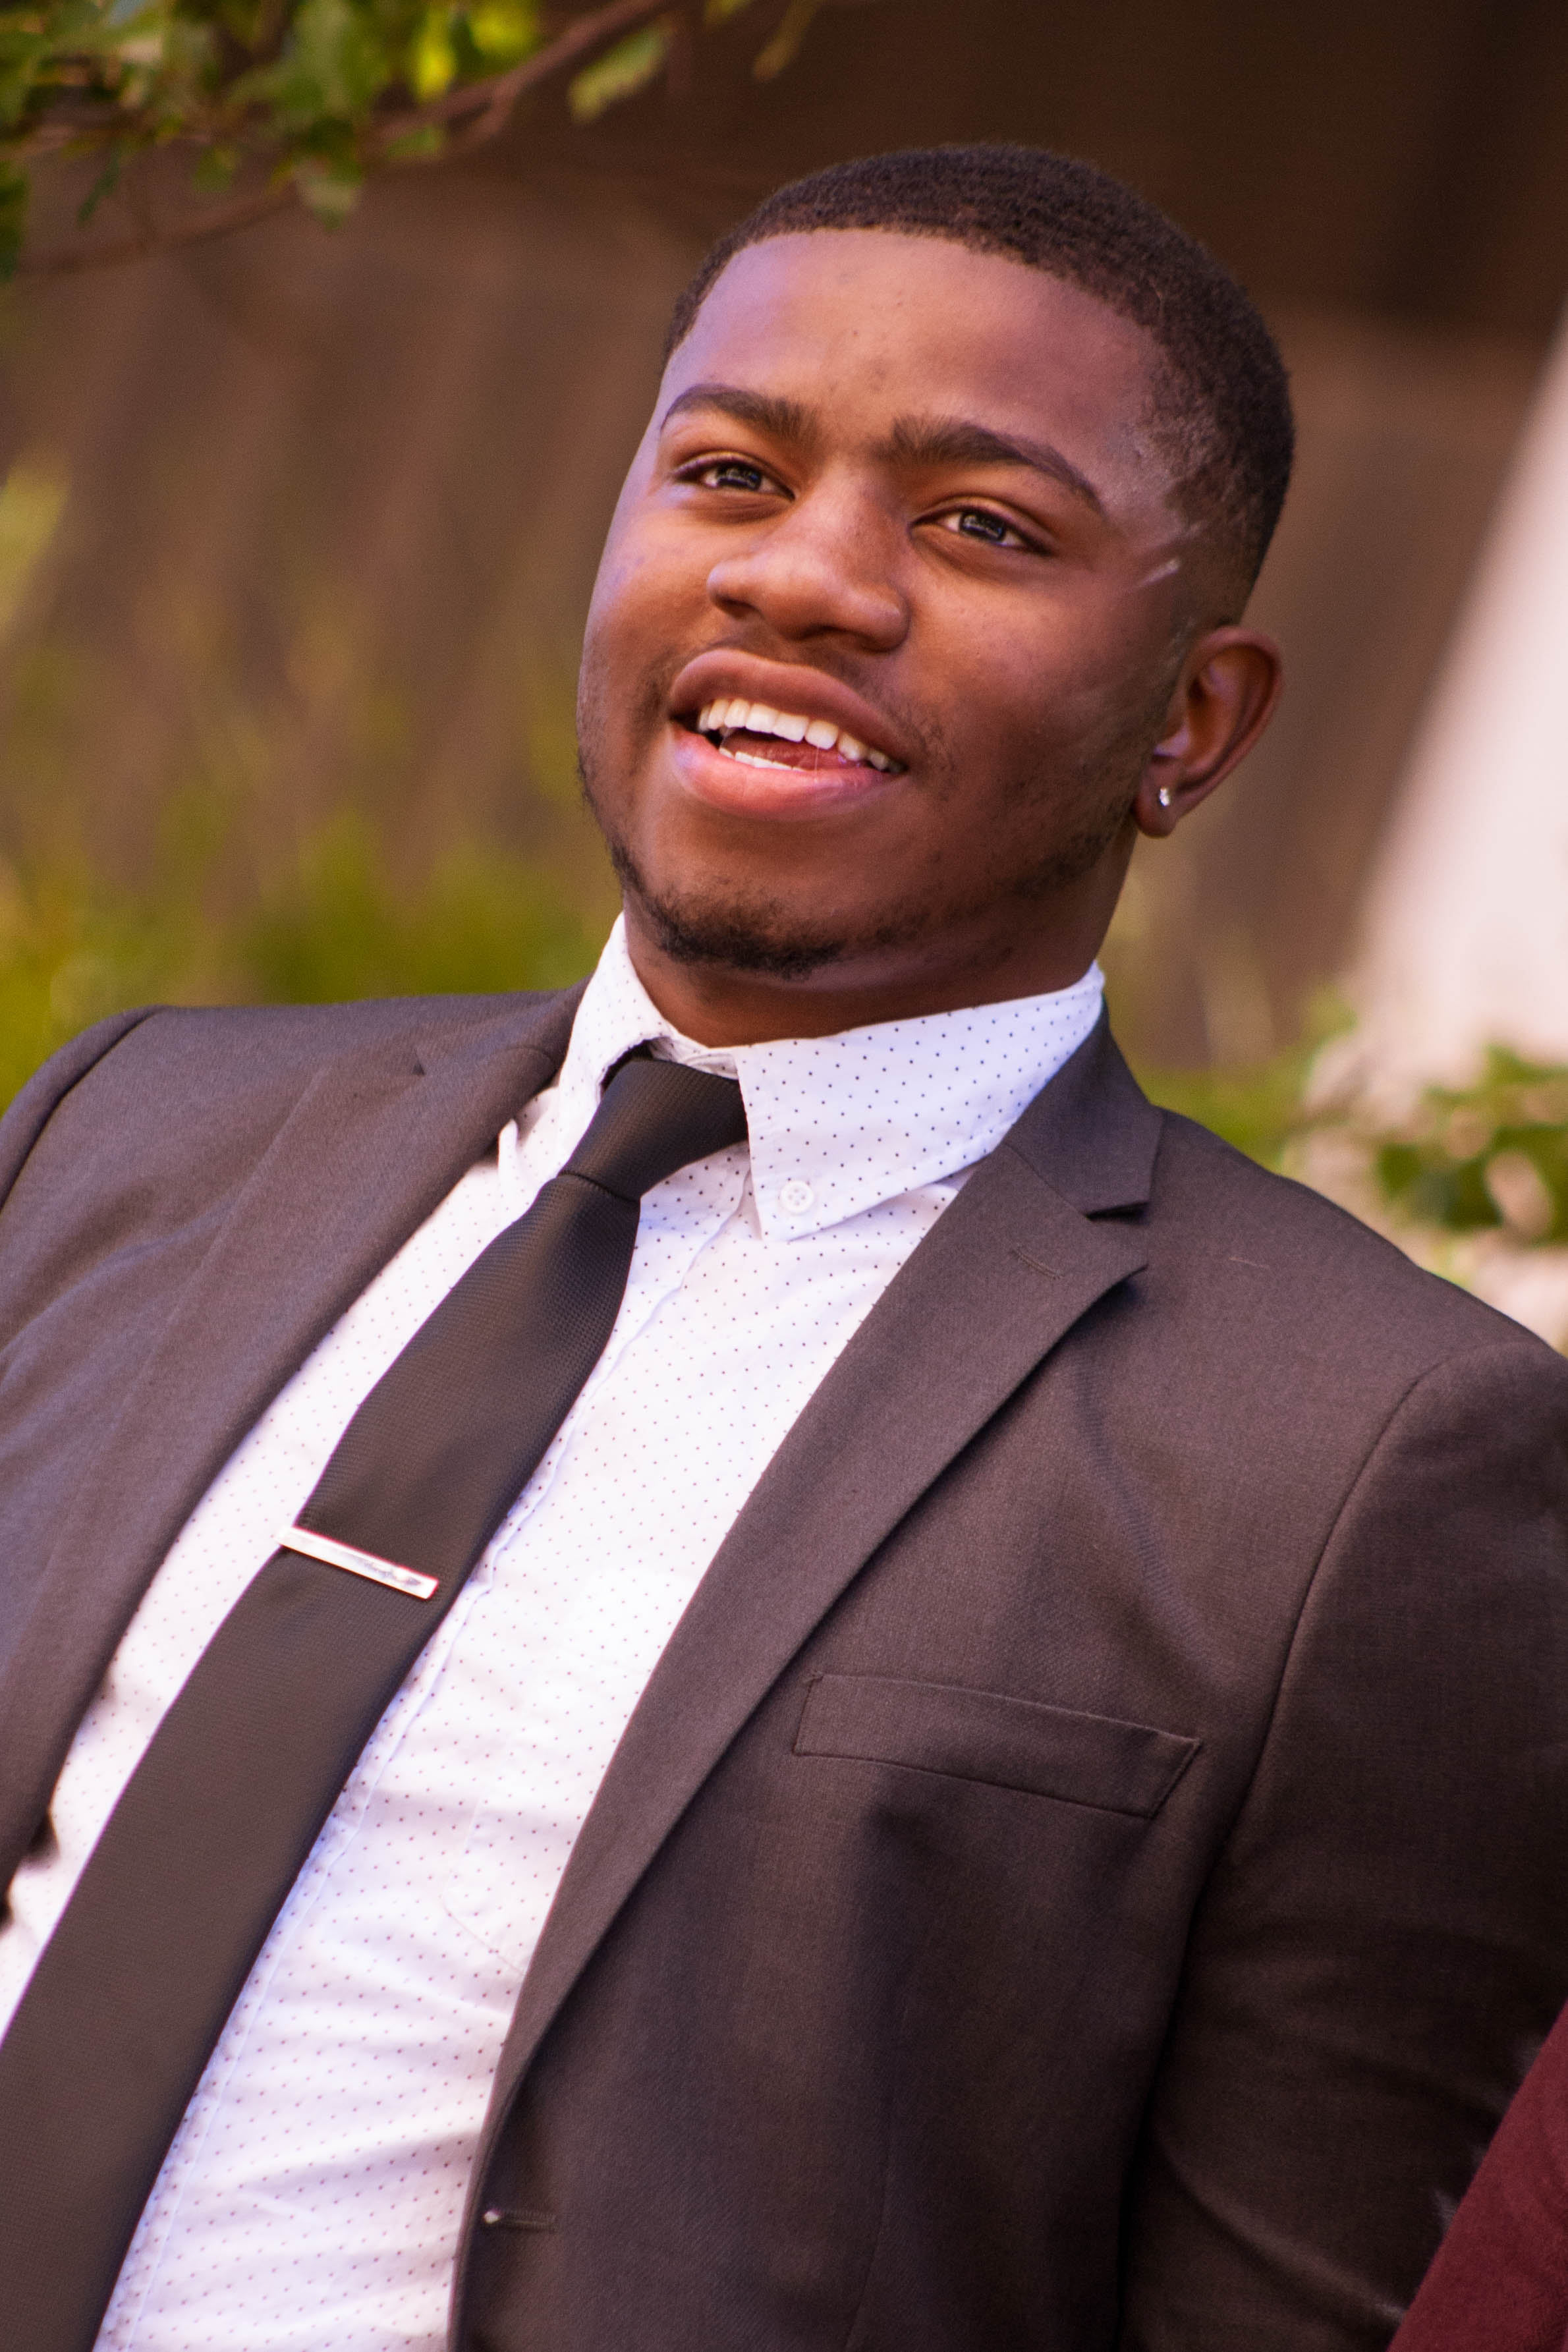 Dee Simmons - Mental Health consultant, Youth Mentor. Dee joined Grand Gentlemen to help promote a positive image to black youth. Dee attended Southern Nazarene University.Graduated May 2016Bachelors: Psychology Minor: SociologyMasters: PsychologyExpected Grad Date: December 2018